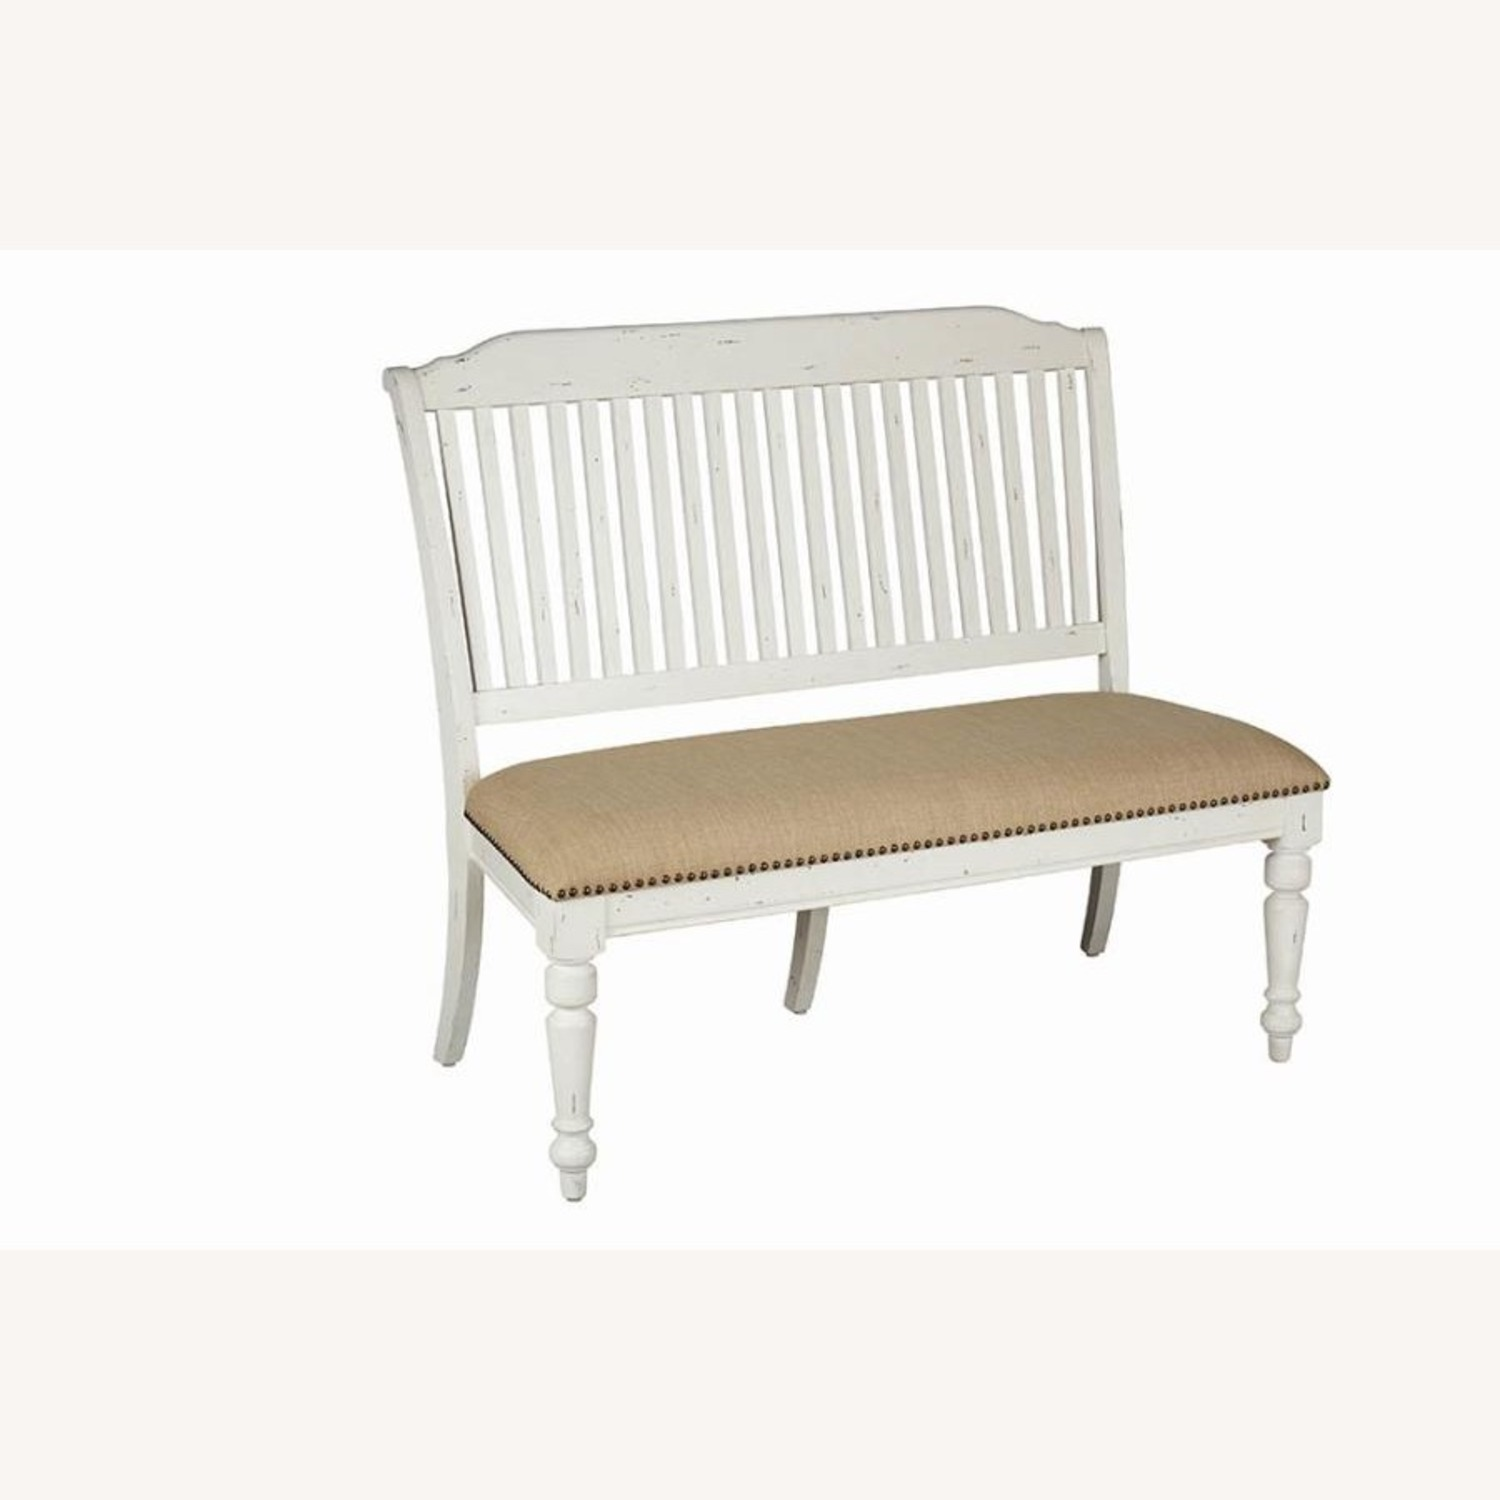 Bench In White Finish W/ Stick-Back Seating - image-0